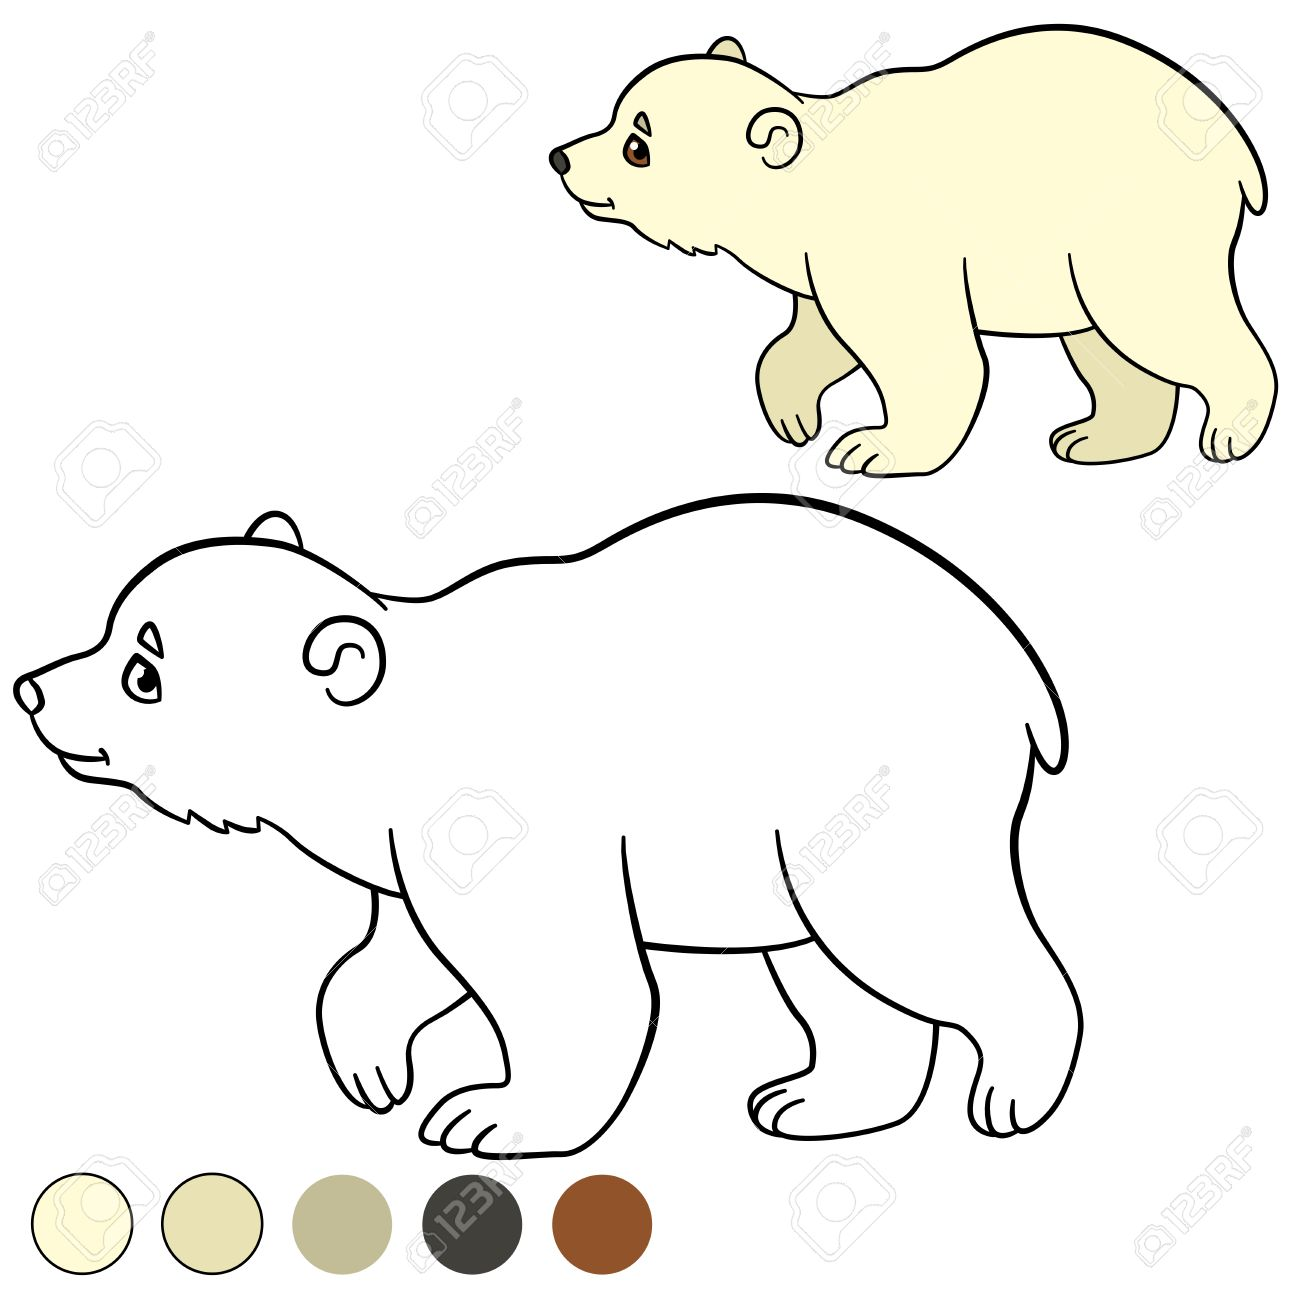 Coloriage Bebe Ours Polaire.Coloriage Petit Ours Bebe Ours Polaire Promene Et Sourit